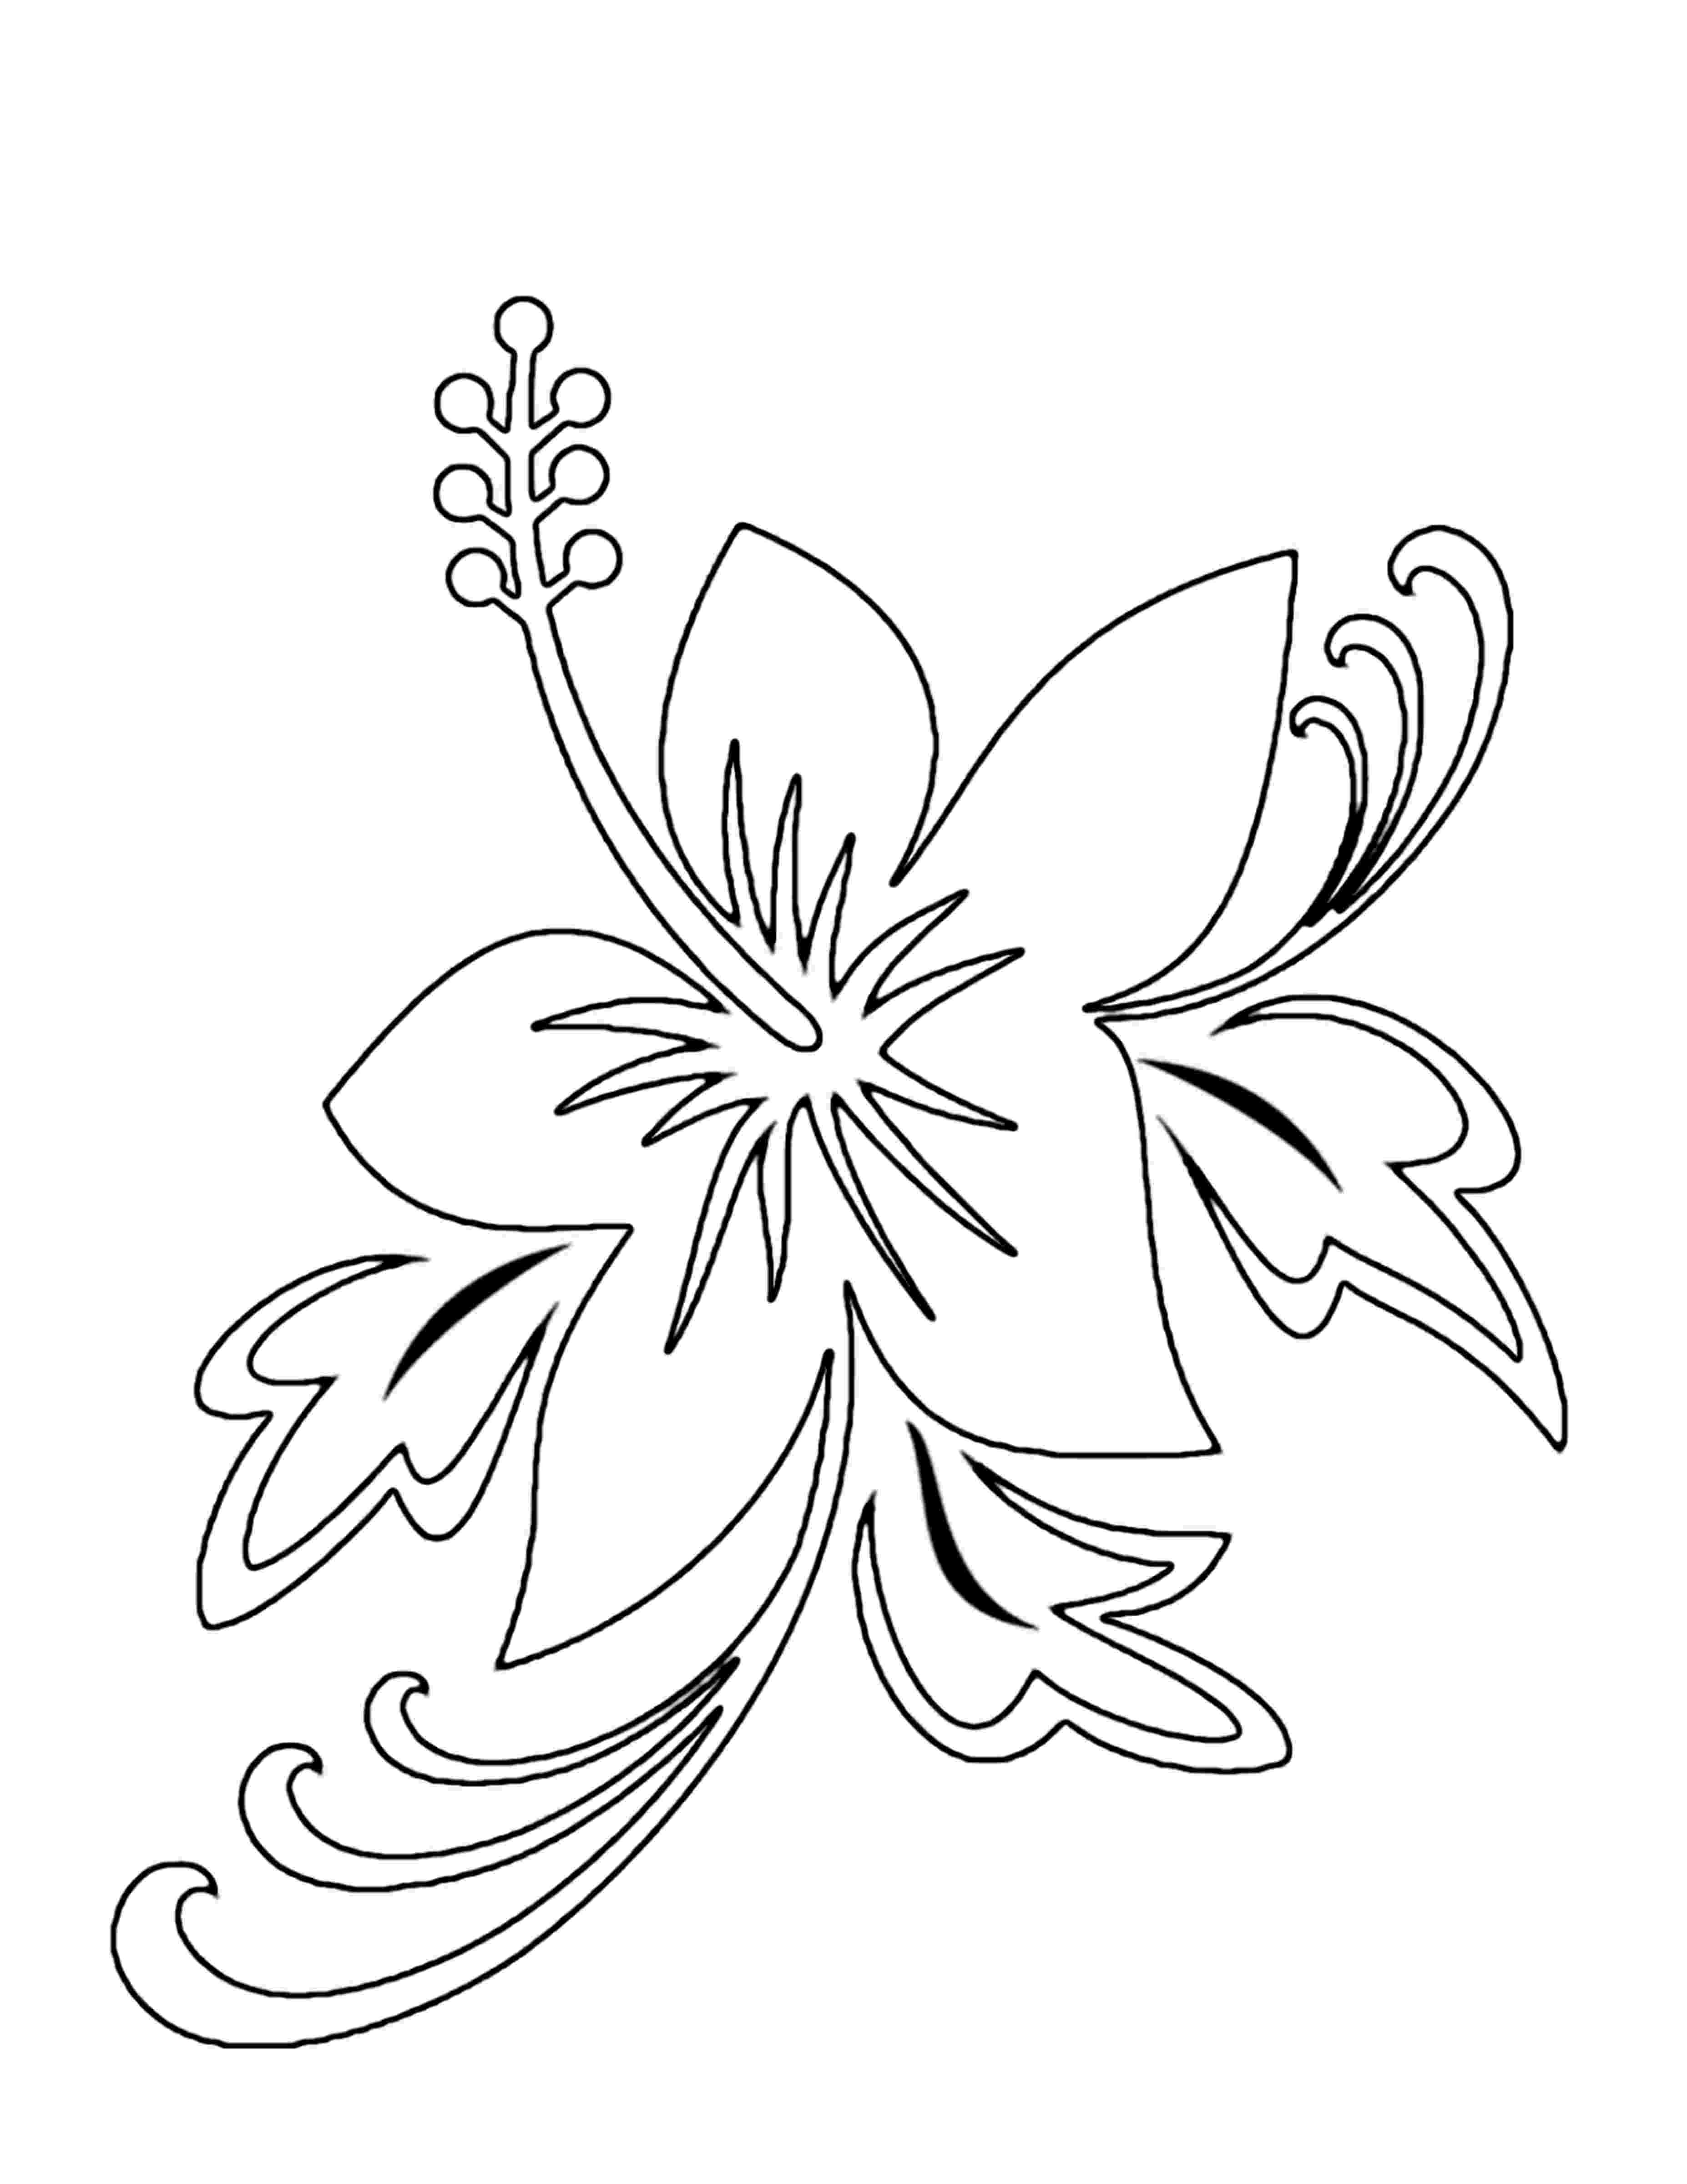 flowers colouring free printable flower coloring pages for kids best flowers colouring 1 2